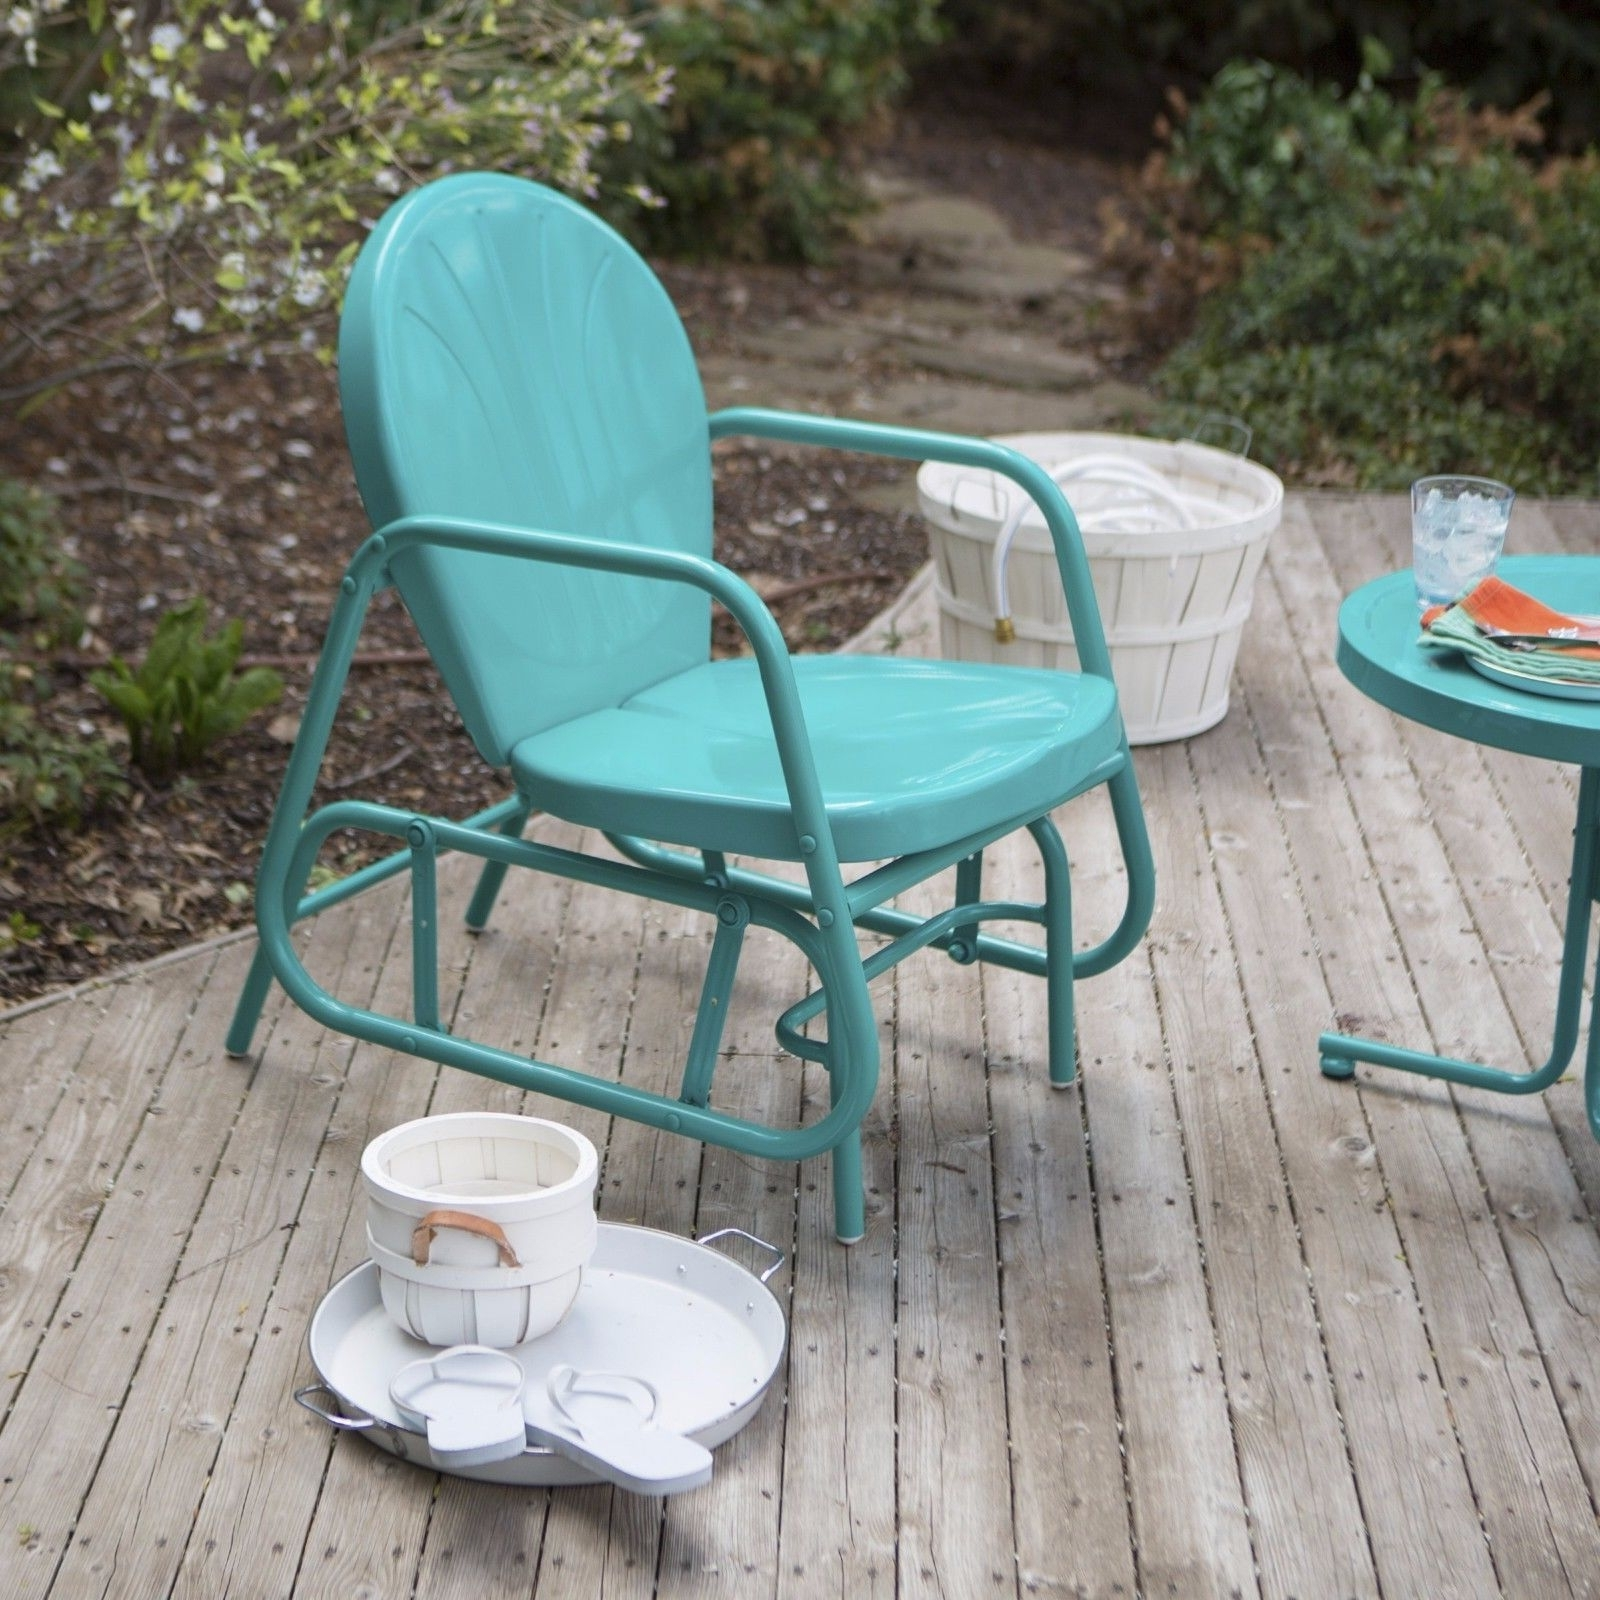 Outdoor Patio Glider Rocking Chair Retro Swing Vintage Furniture In Well Known Retro Outdoor Rocking Chairs (View 6 of 15)